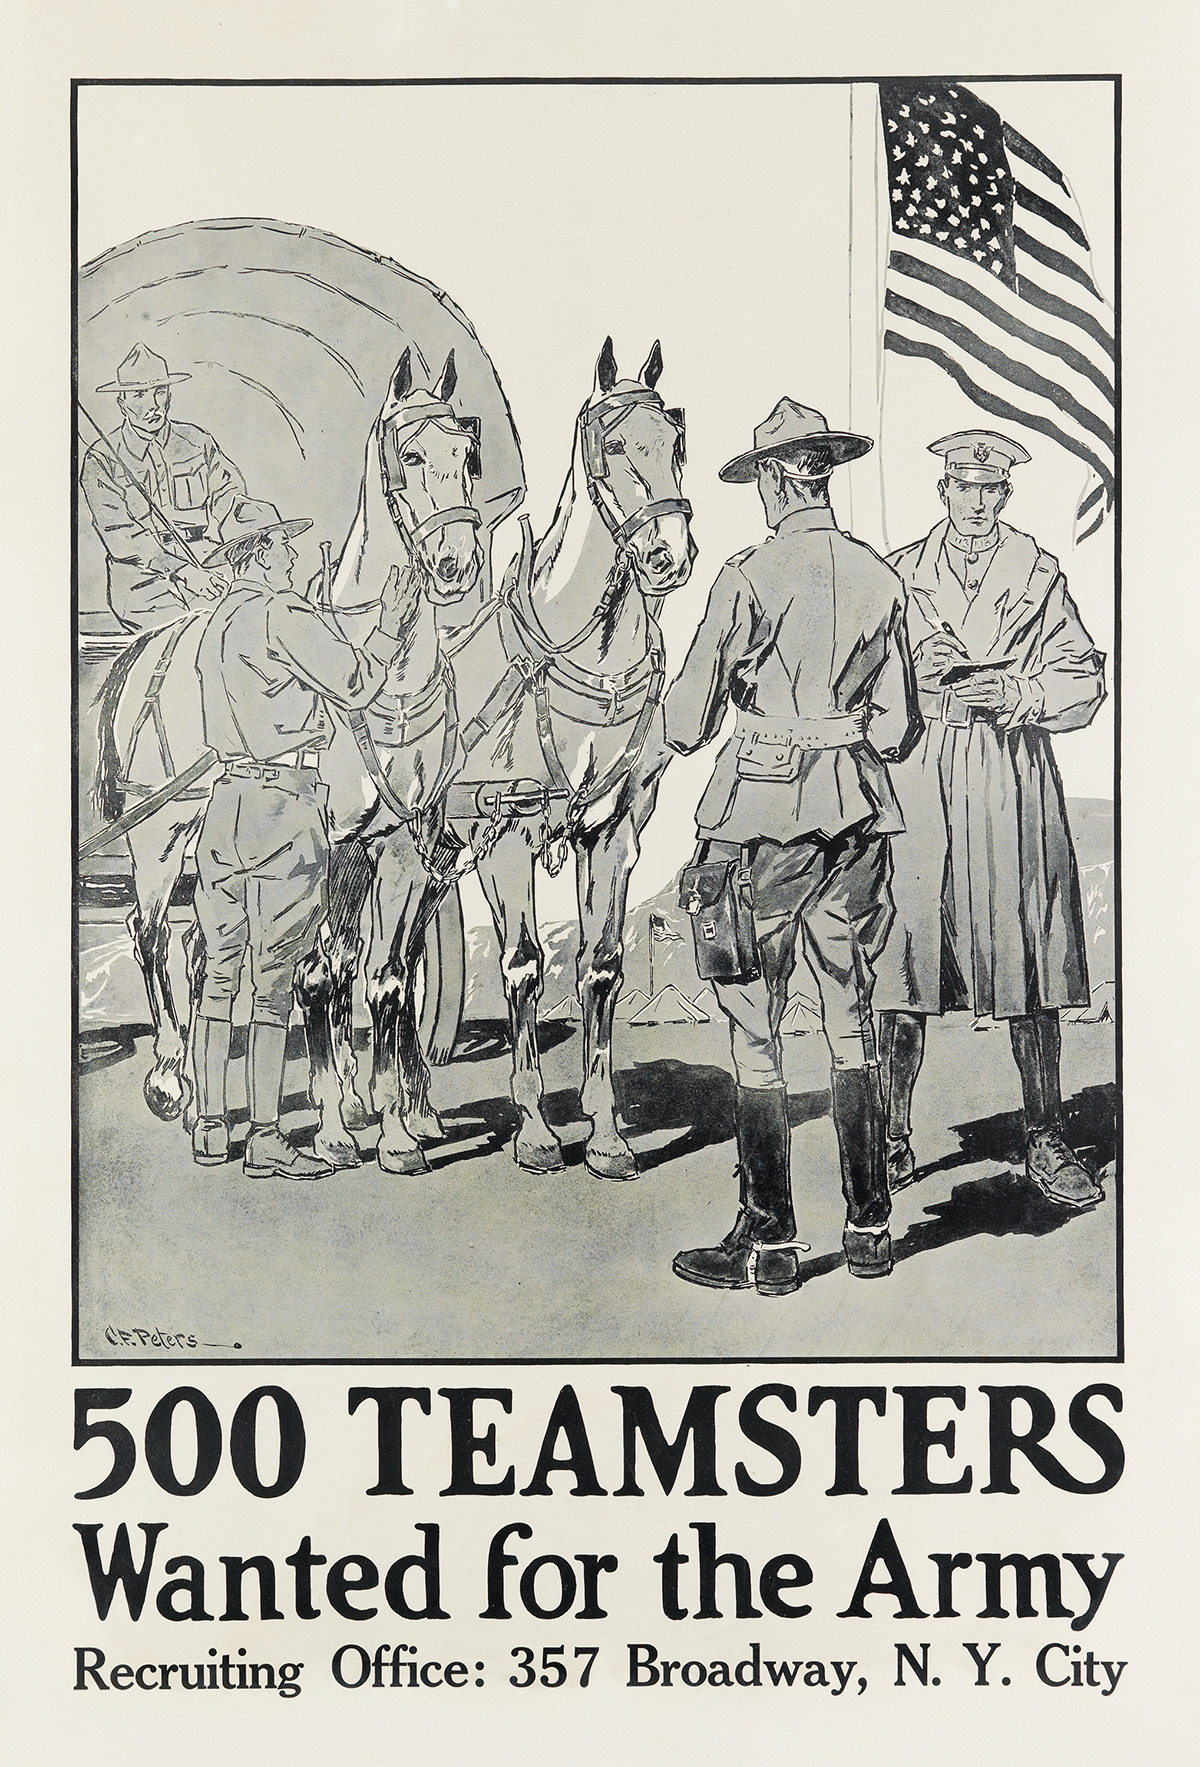 C.F. PETERS (DATES UNKNOWN). 500 TEAMSTERS WANTED FOR THE ARMY. 33x22 inches, 84x57 cm.